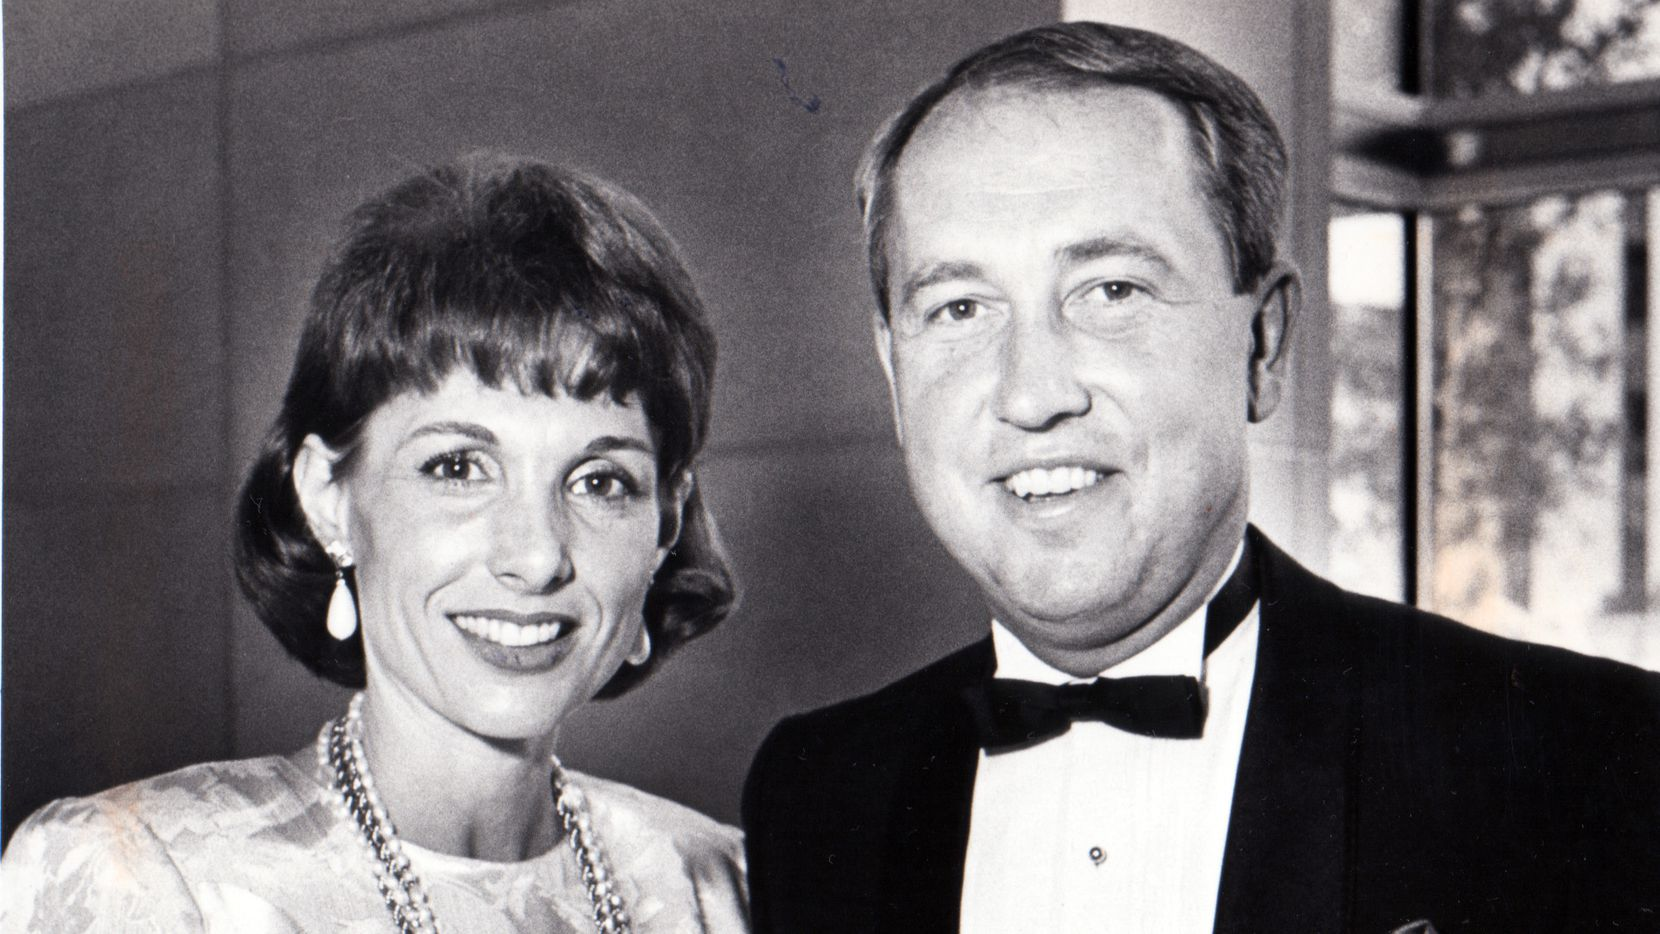 Former American Airlines finance and marketing executive Tom Plaskett and his wife, Linda, at a charity event in May 1986.